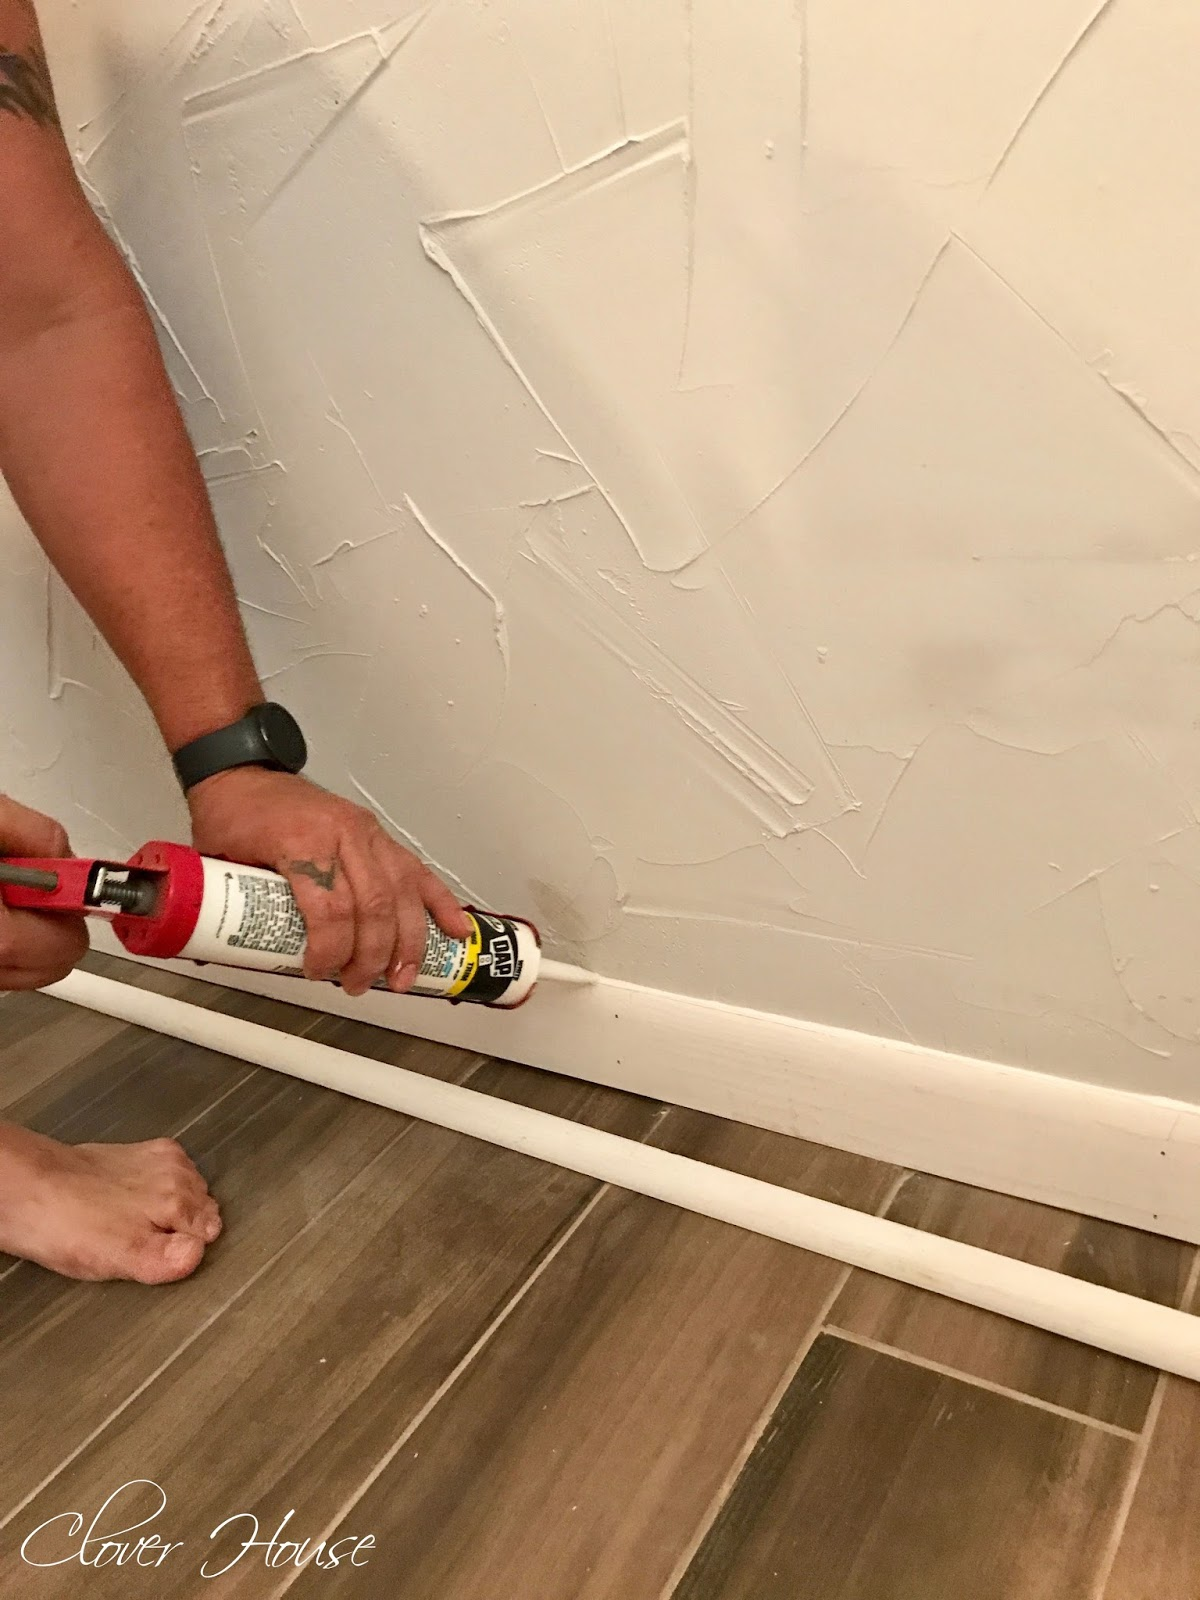 Clover house diy perfect baseboards to finish off your baseboards completely you will want to use a white paintable caulk run a very small bead of caulk along all the open gaps doublecrazyfo Image collections